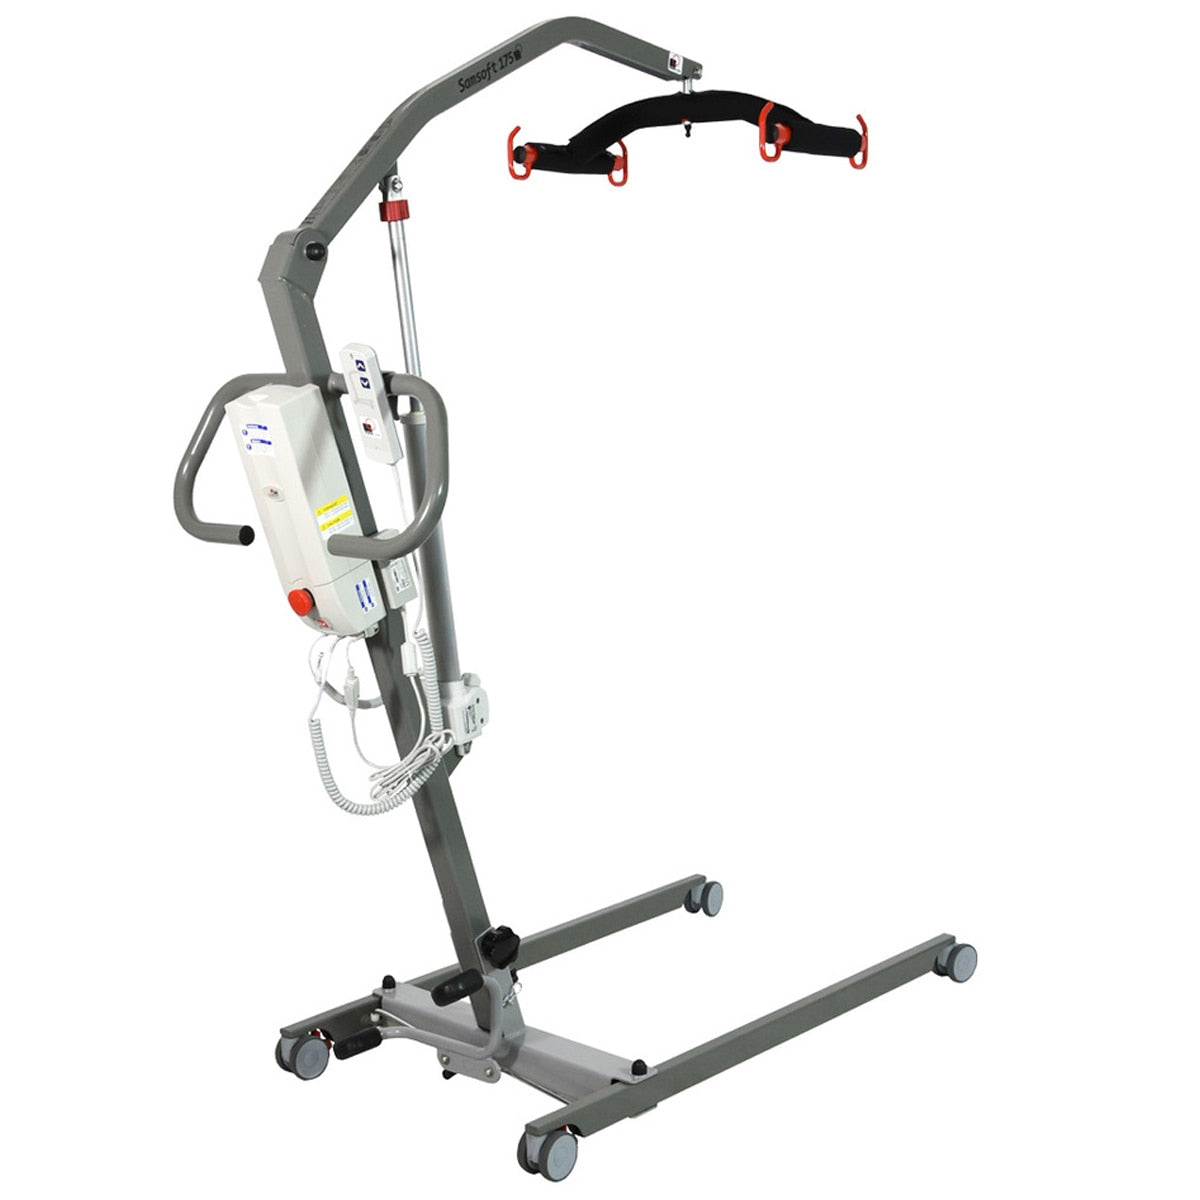 Samsoft 175 Folding Mobile Patient Hoist